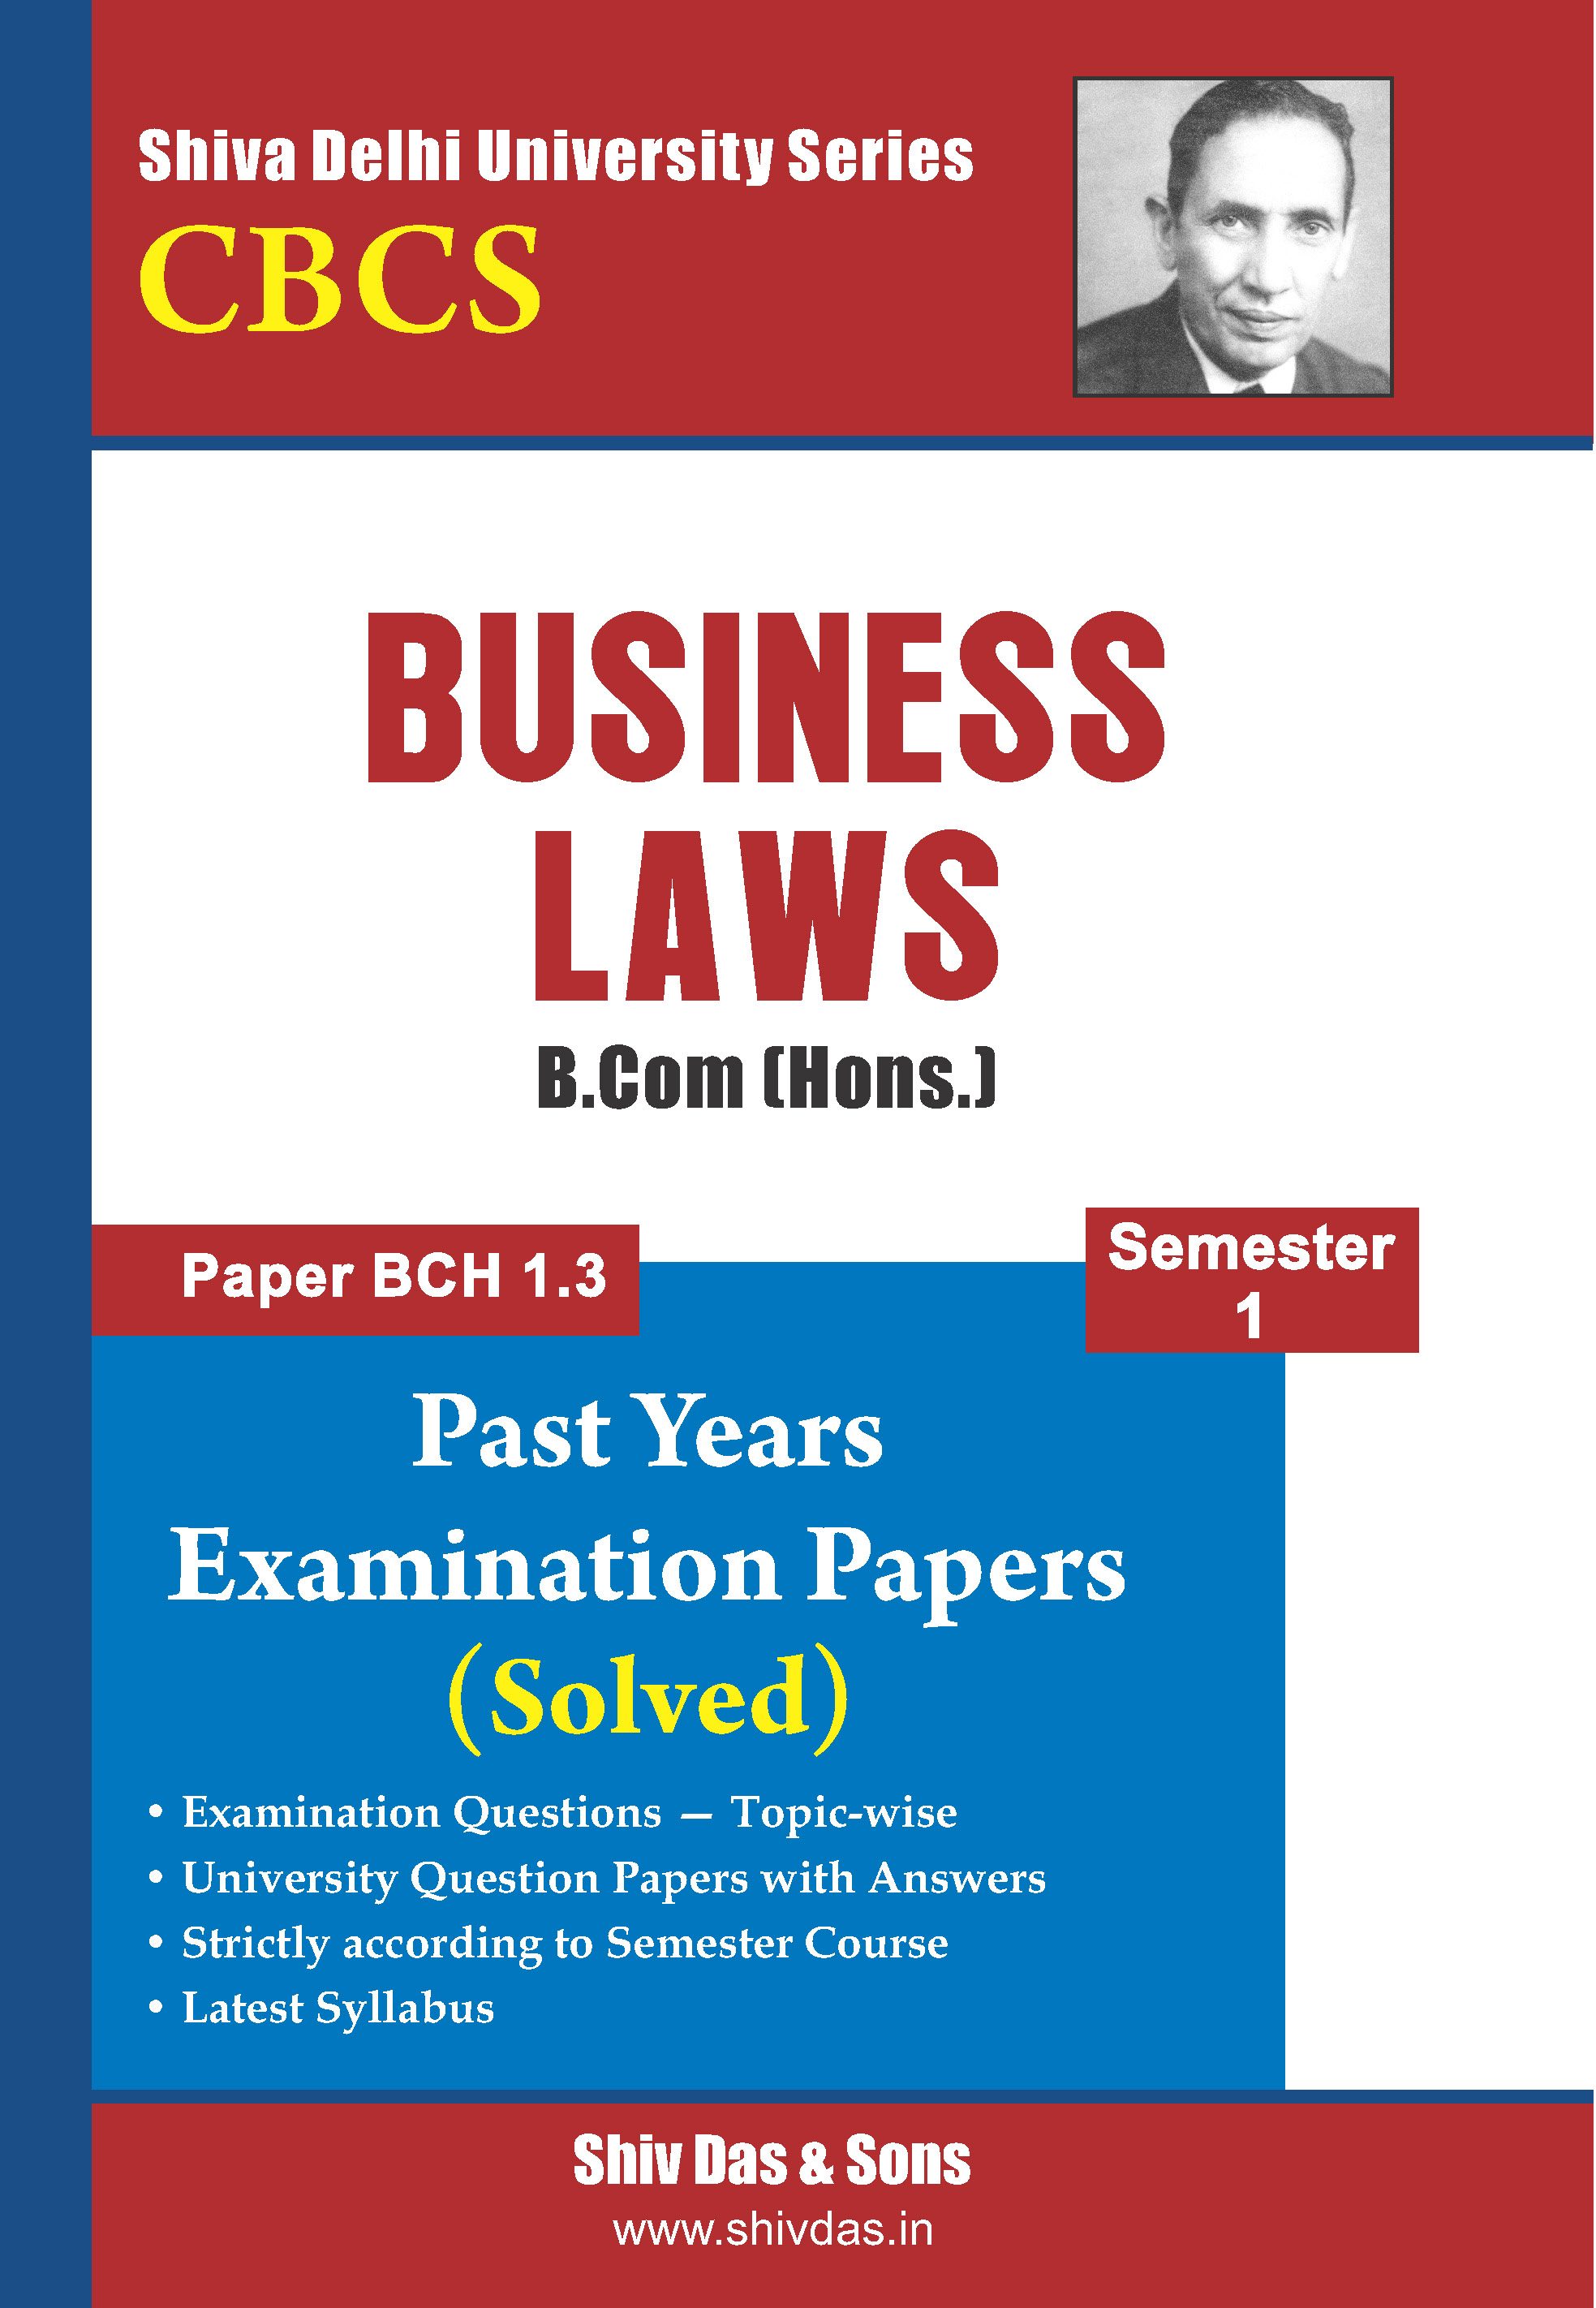 B.Com Hons. Semester-1 Business Laws